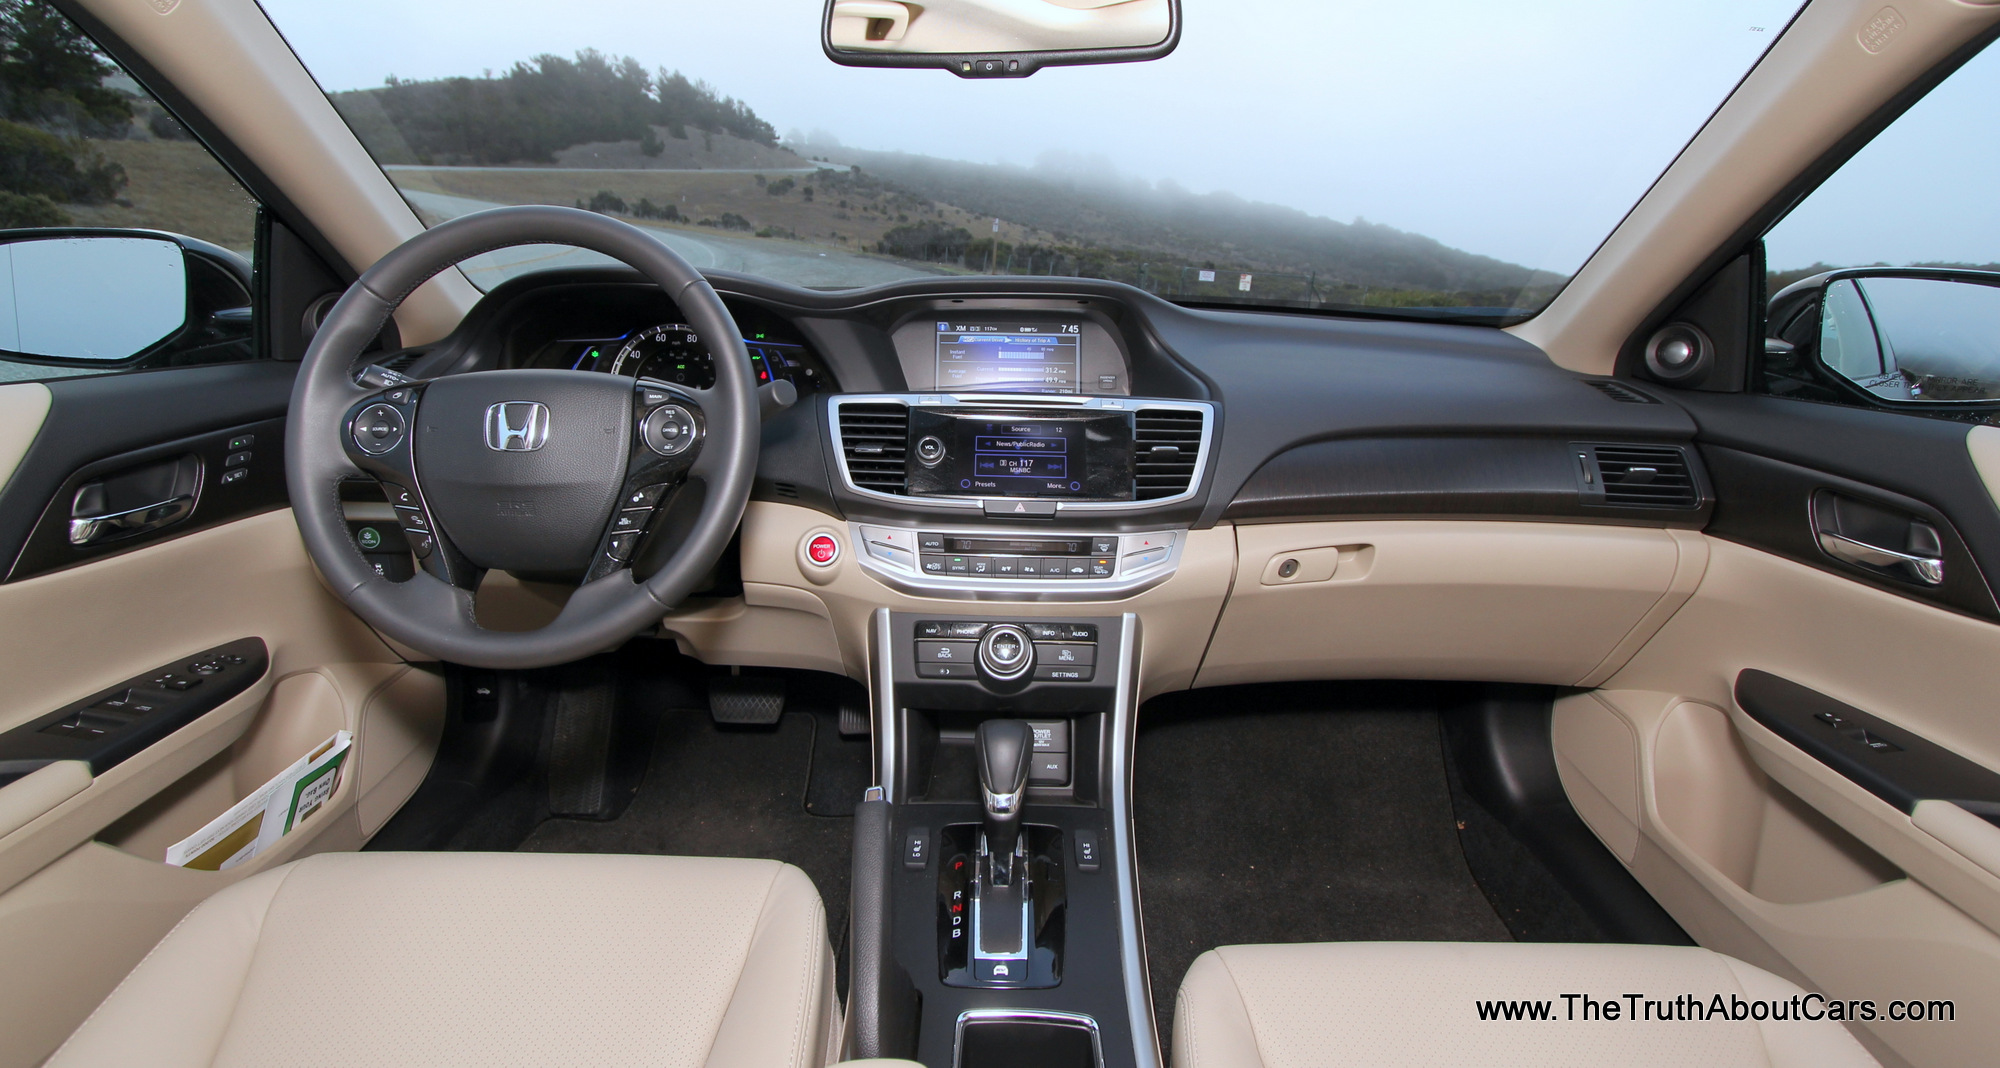 2014 Honda Accord Hybrid Infotainment 002 The Truth